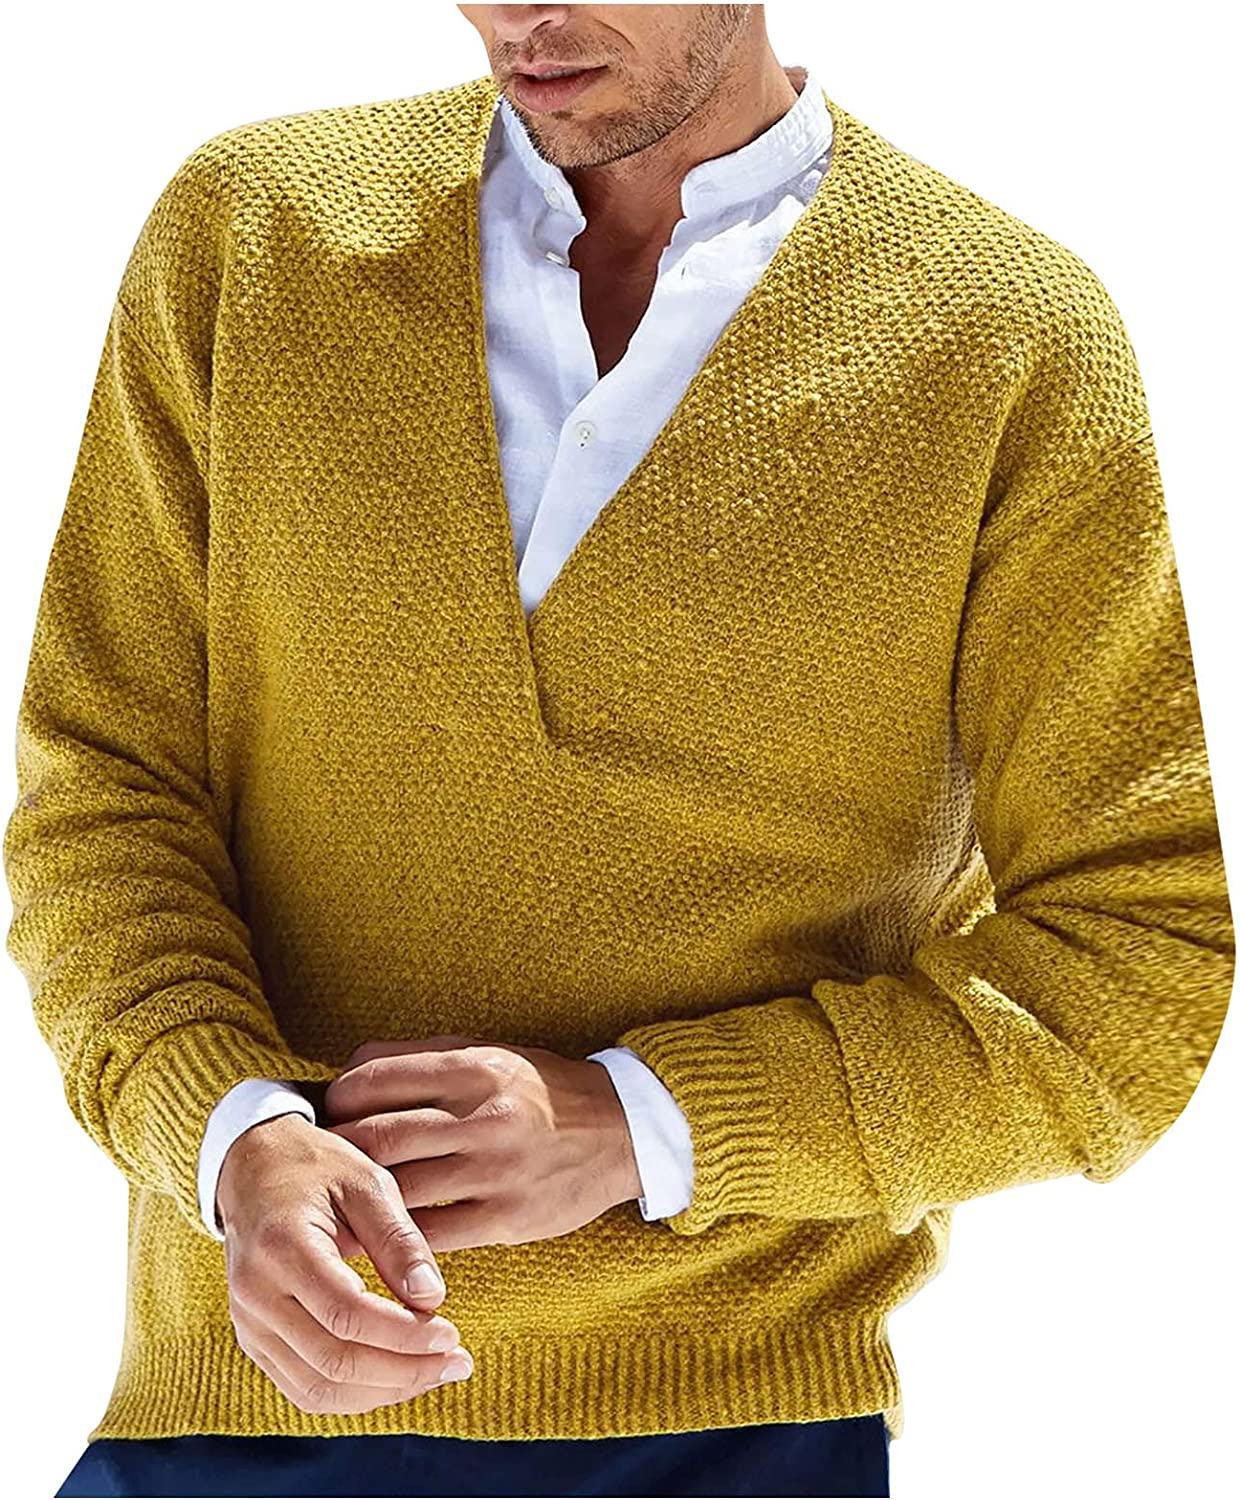 HONGJ Knit Sweater for Mens, Fall Winter V Neck Solid Long Sleeve Pullover Men's Fashion Casual Warm Basic Jumper Tops